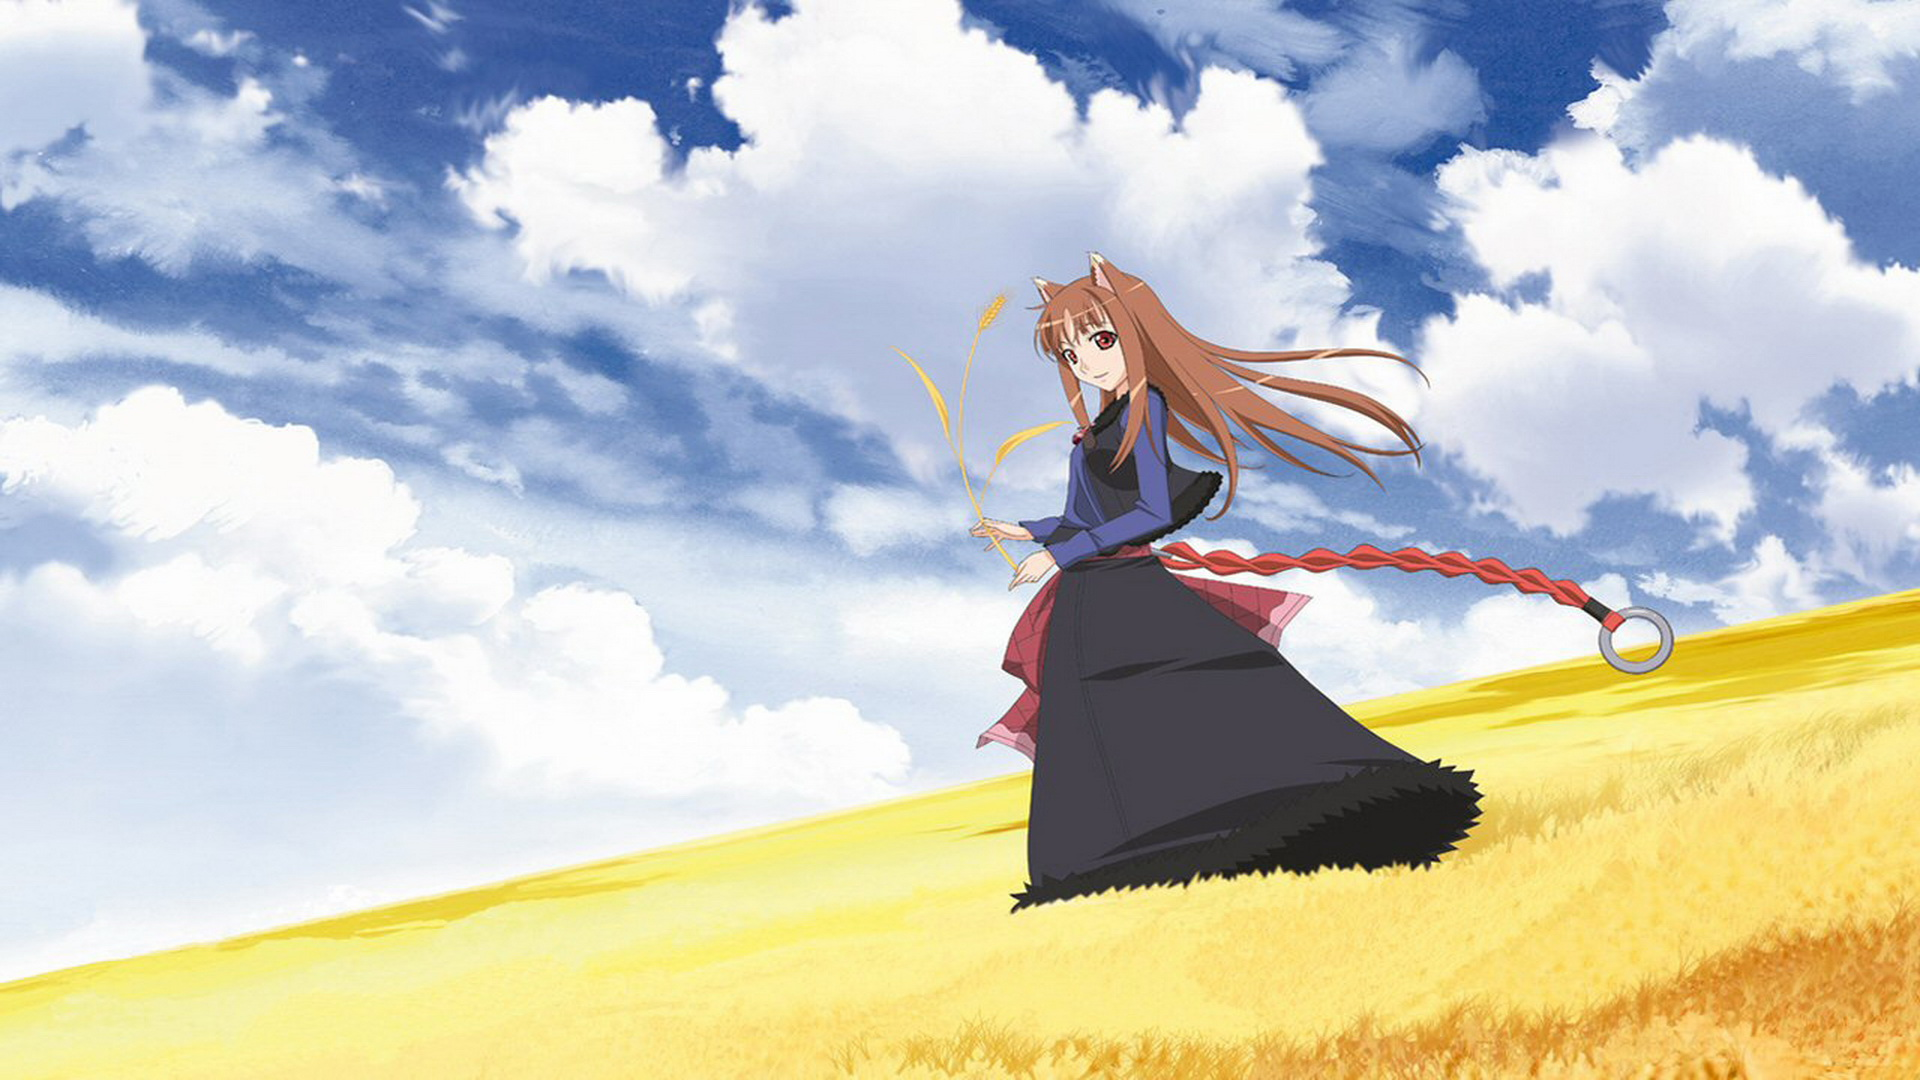 31 Spice And Wolf Hd Wallpaper On Wallpapersafari